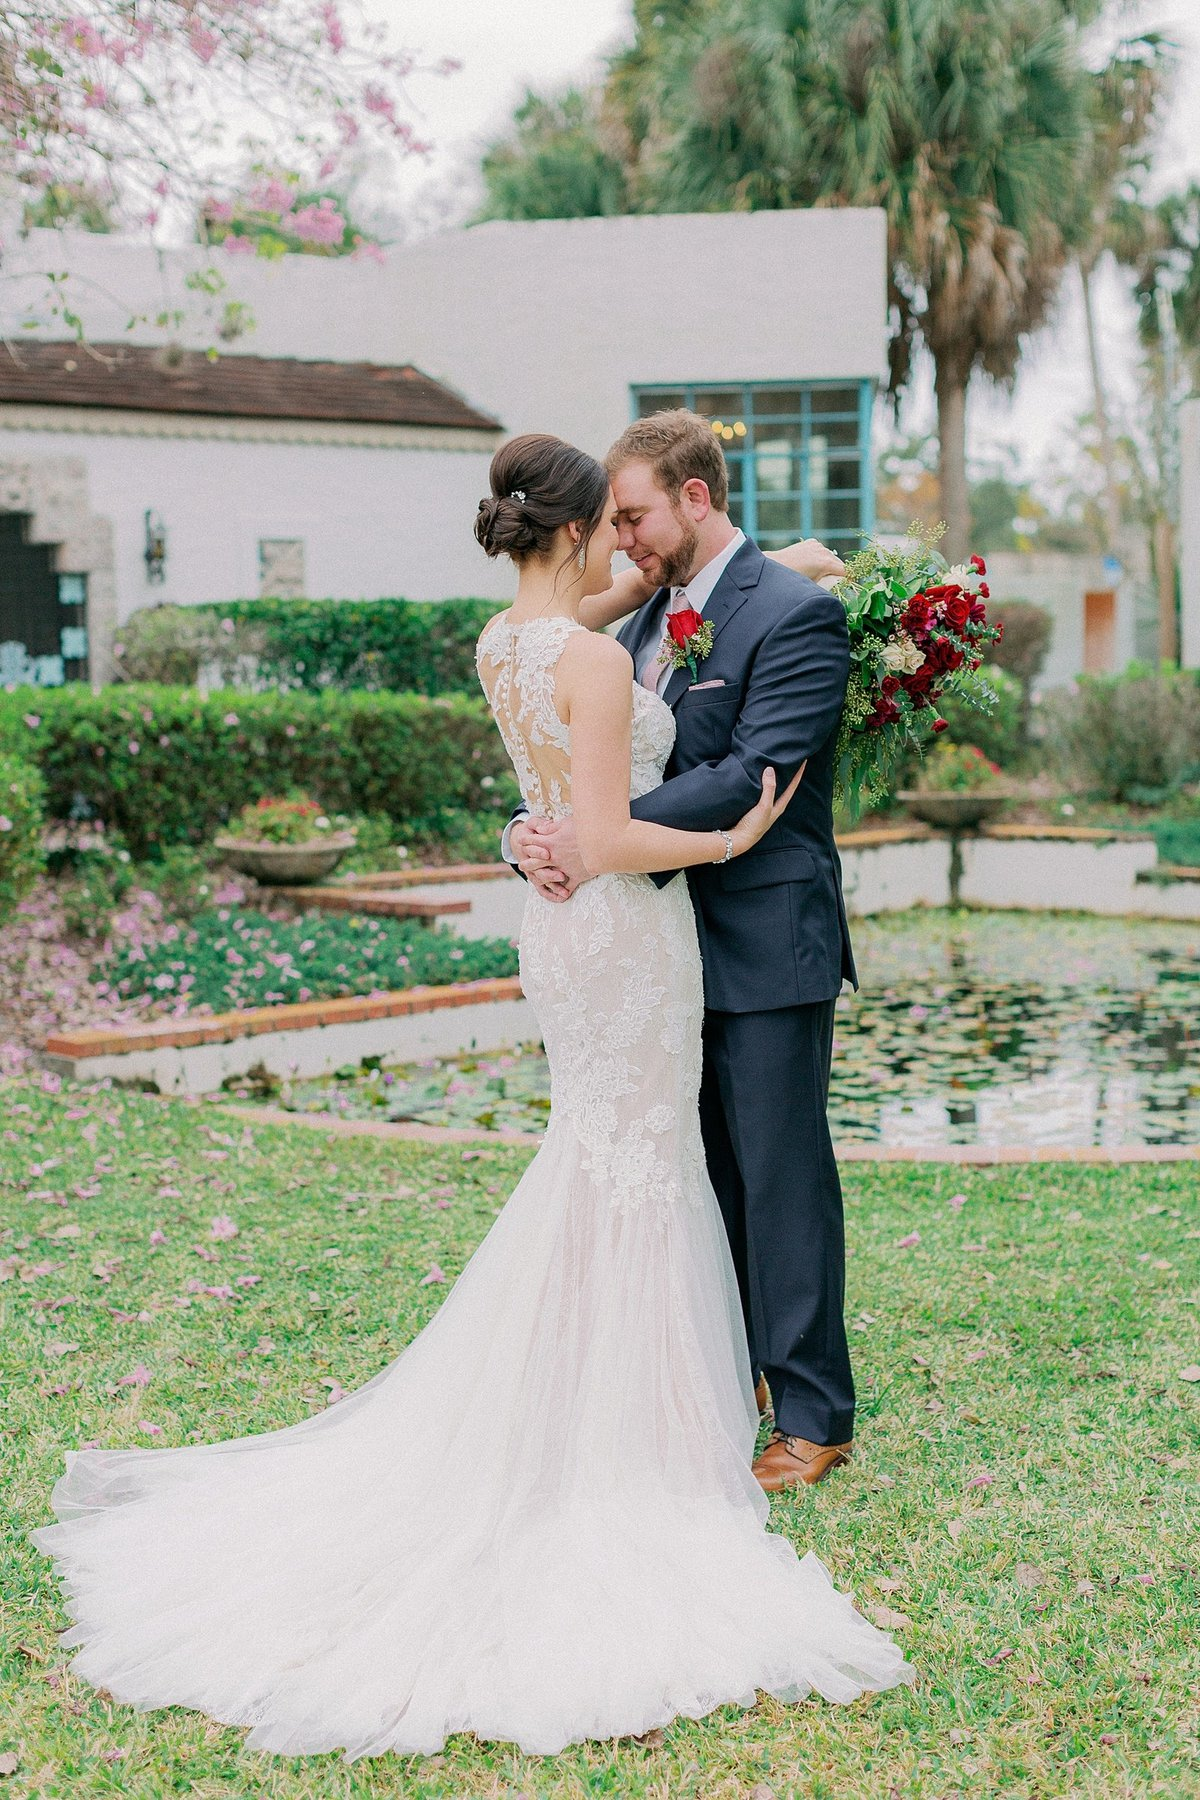 Sergi Wedding Maitland Art and History Museum Casie Marie Photography Orlando Photographer_0032